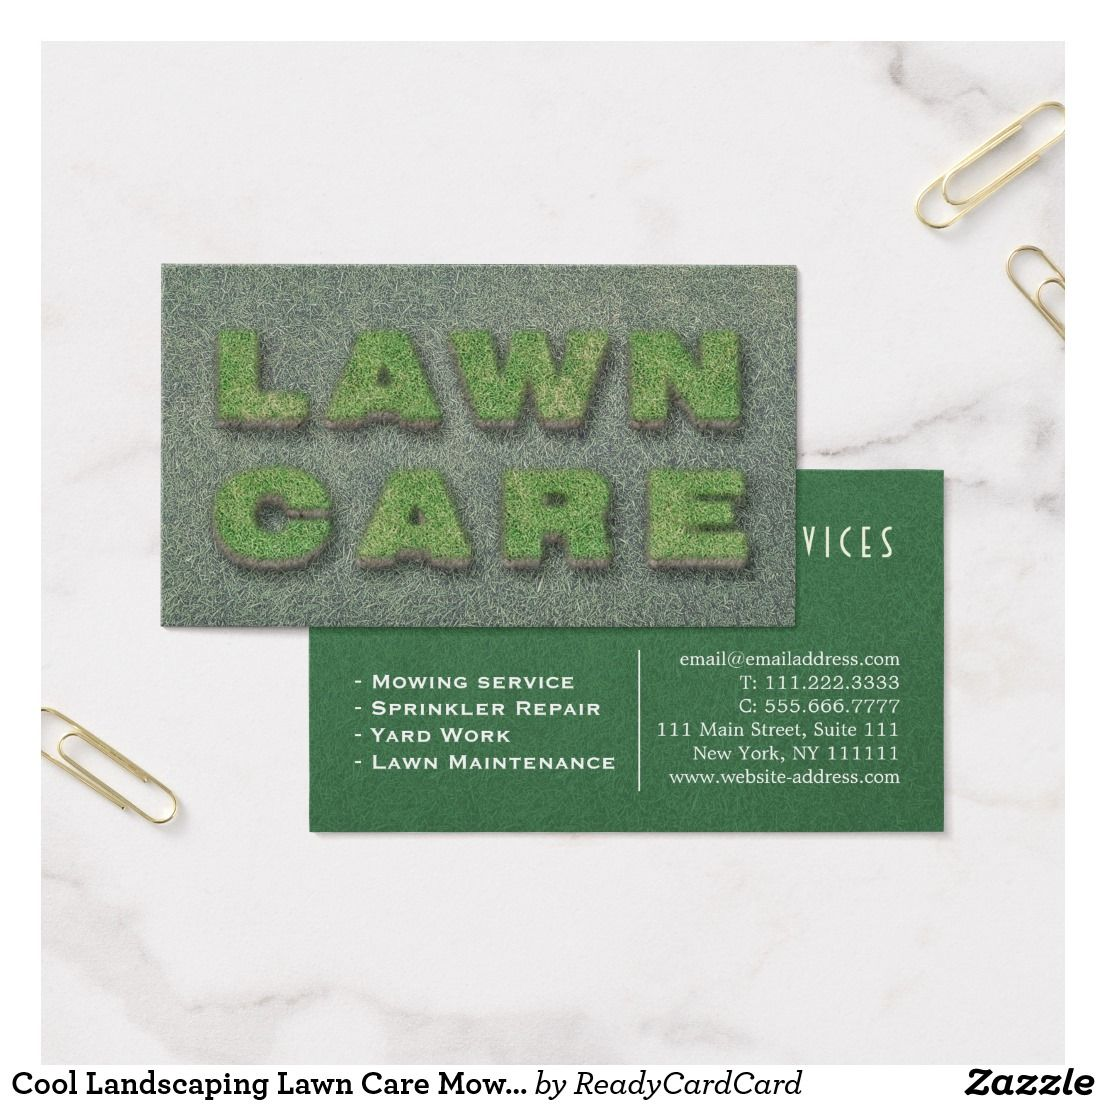 Cool Landscaping Lawn Care Mower Business Card | Business Cards ...